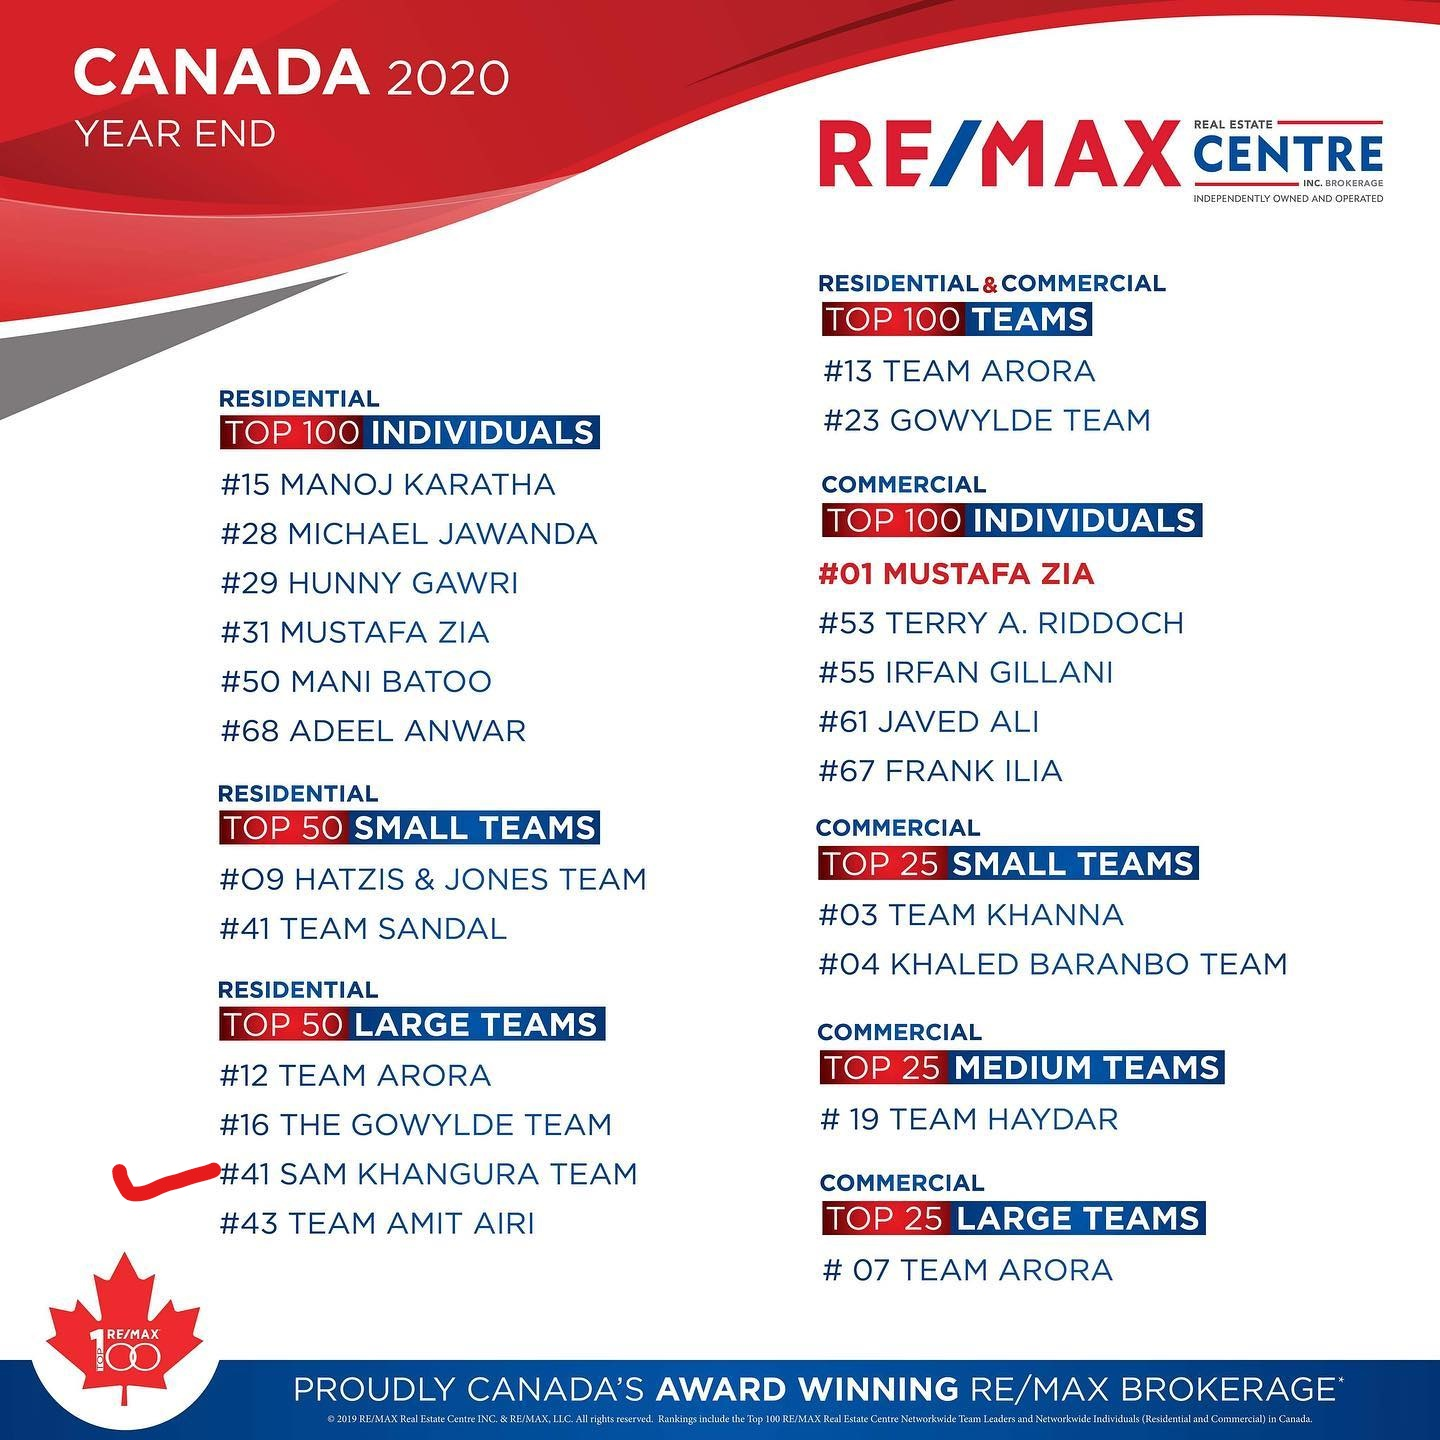 Team Sam Khangura ranked in the Re/Max Top 50 large residential Teams all over Canada for the year-end 2020.